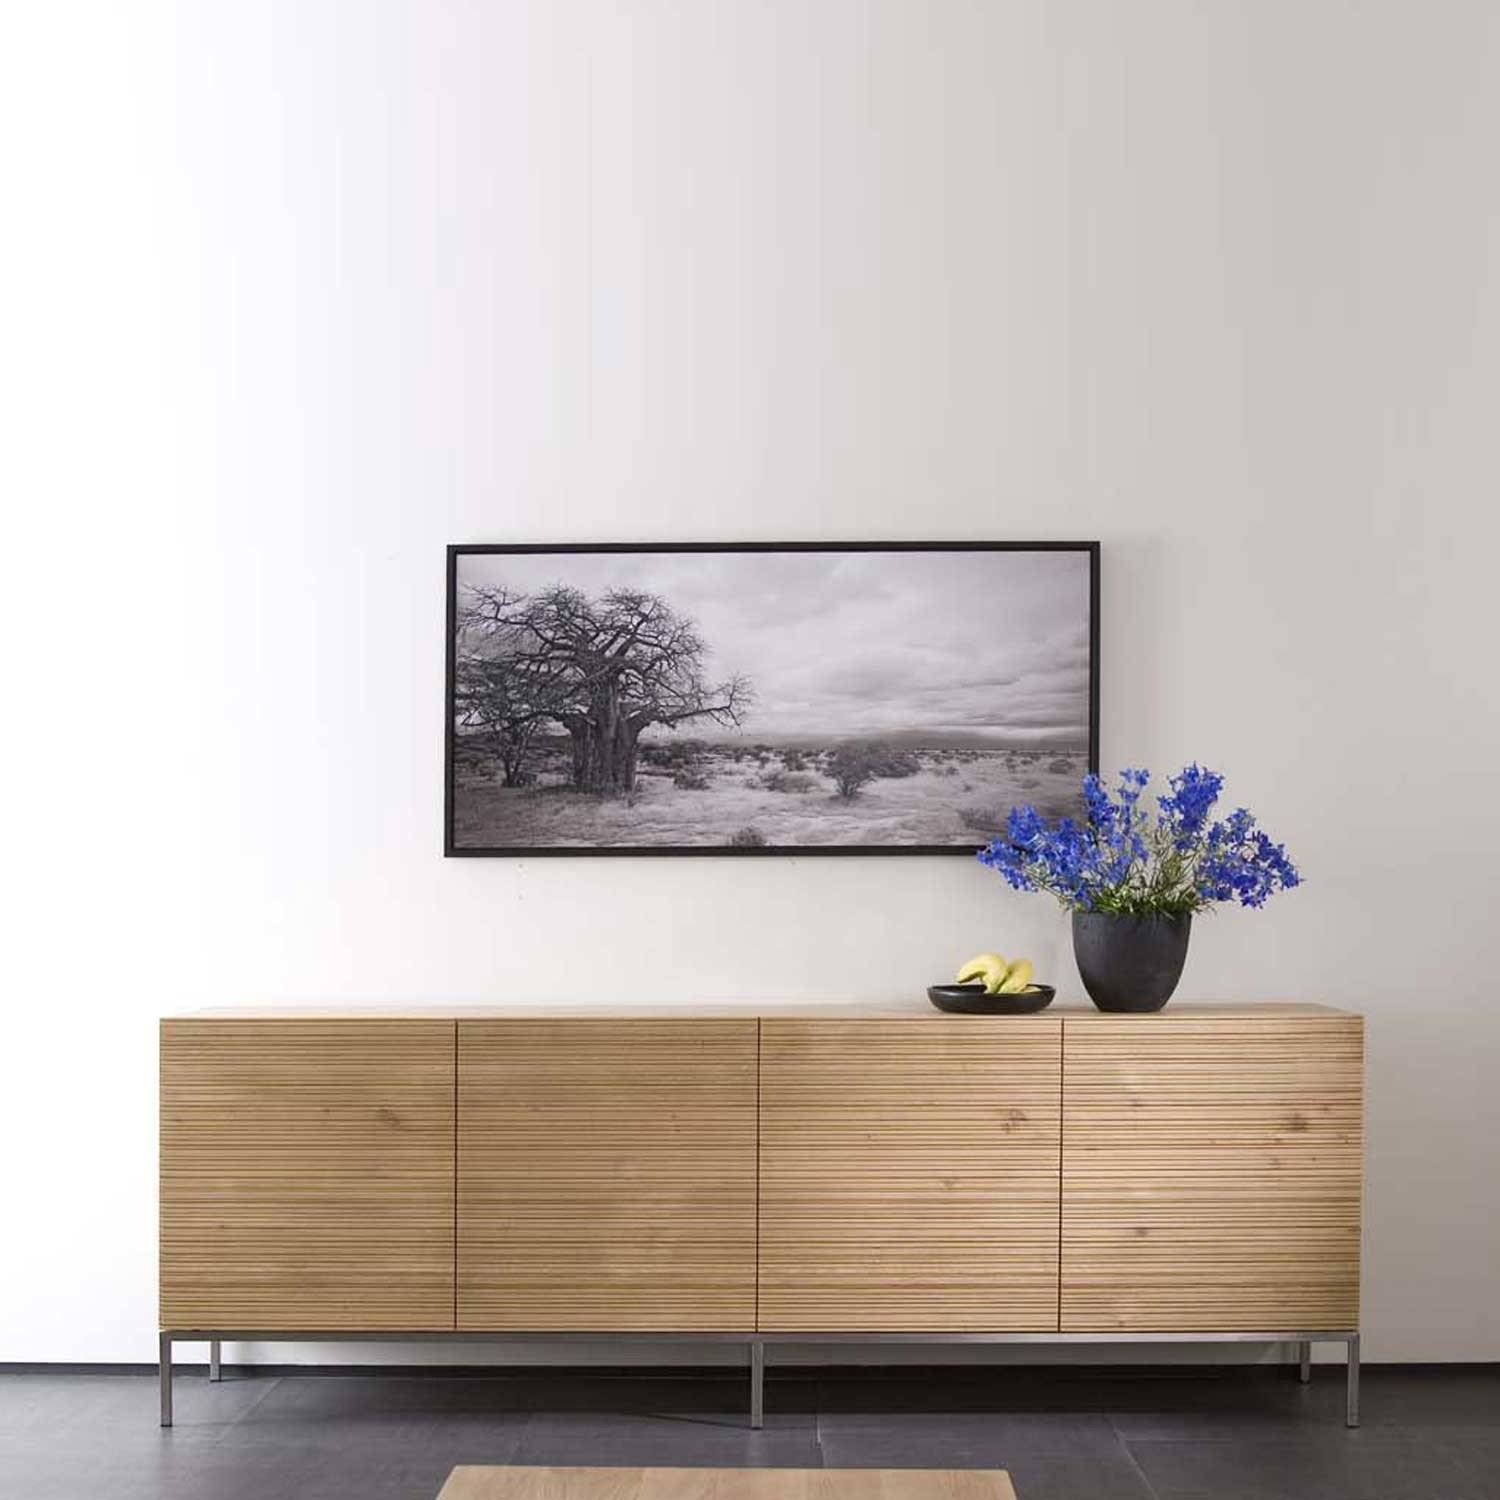 Ethnicraft Stonecut Oak Sideboards | Solid Wood Furniture pertaining to White and Wood Sideboards (Image 5 of 30)